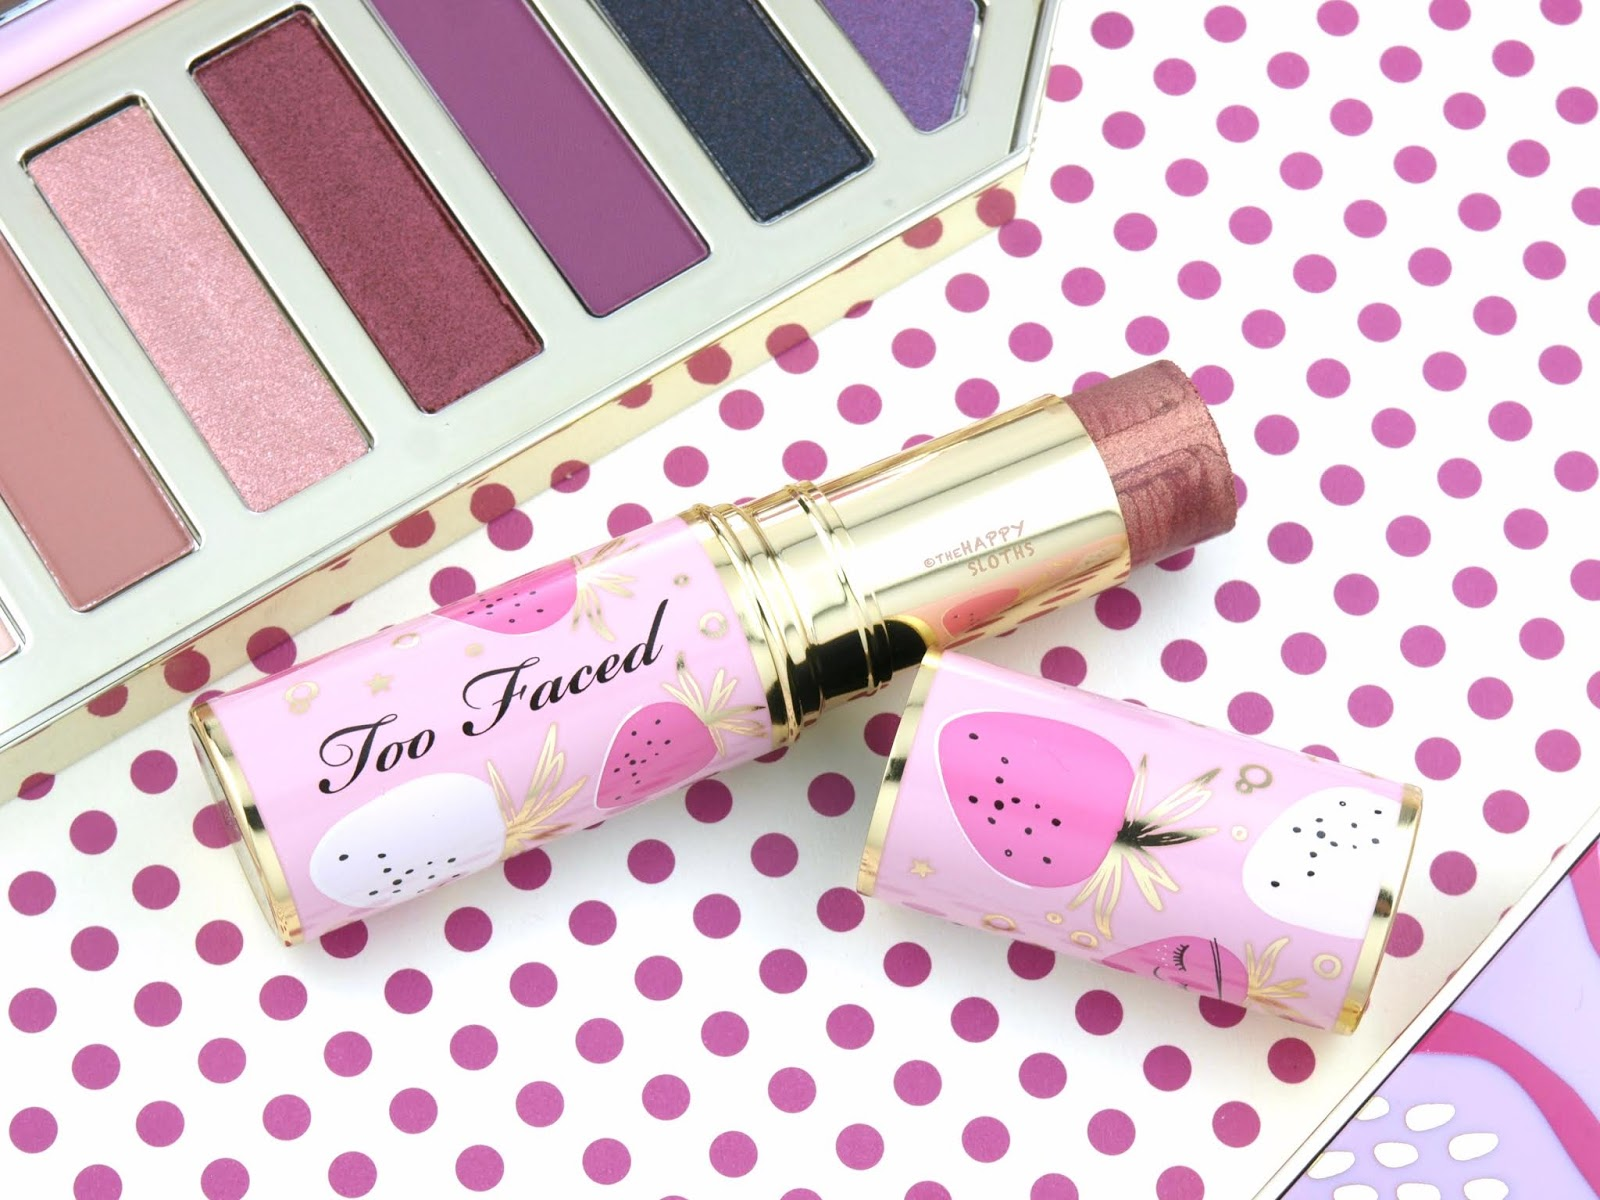 Edition Tutti Frutti Christmas Fruit Cake Makeup Collection by Too Faced #15